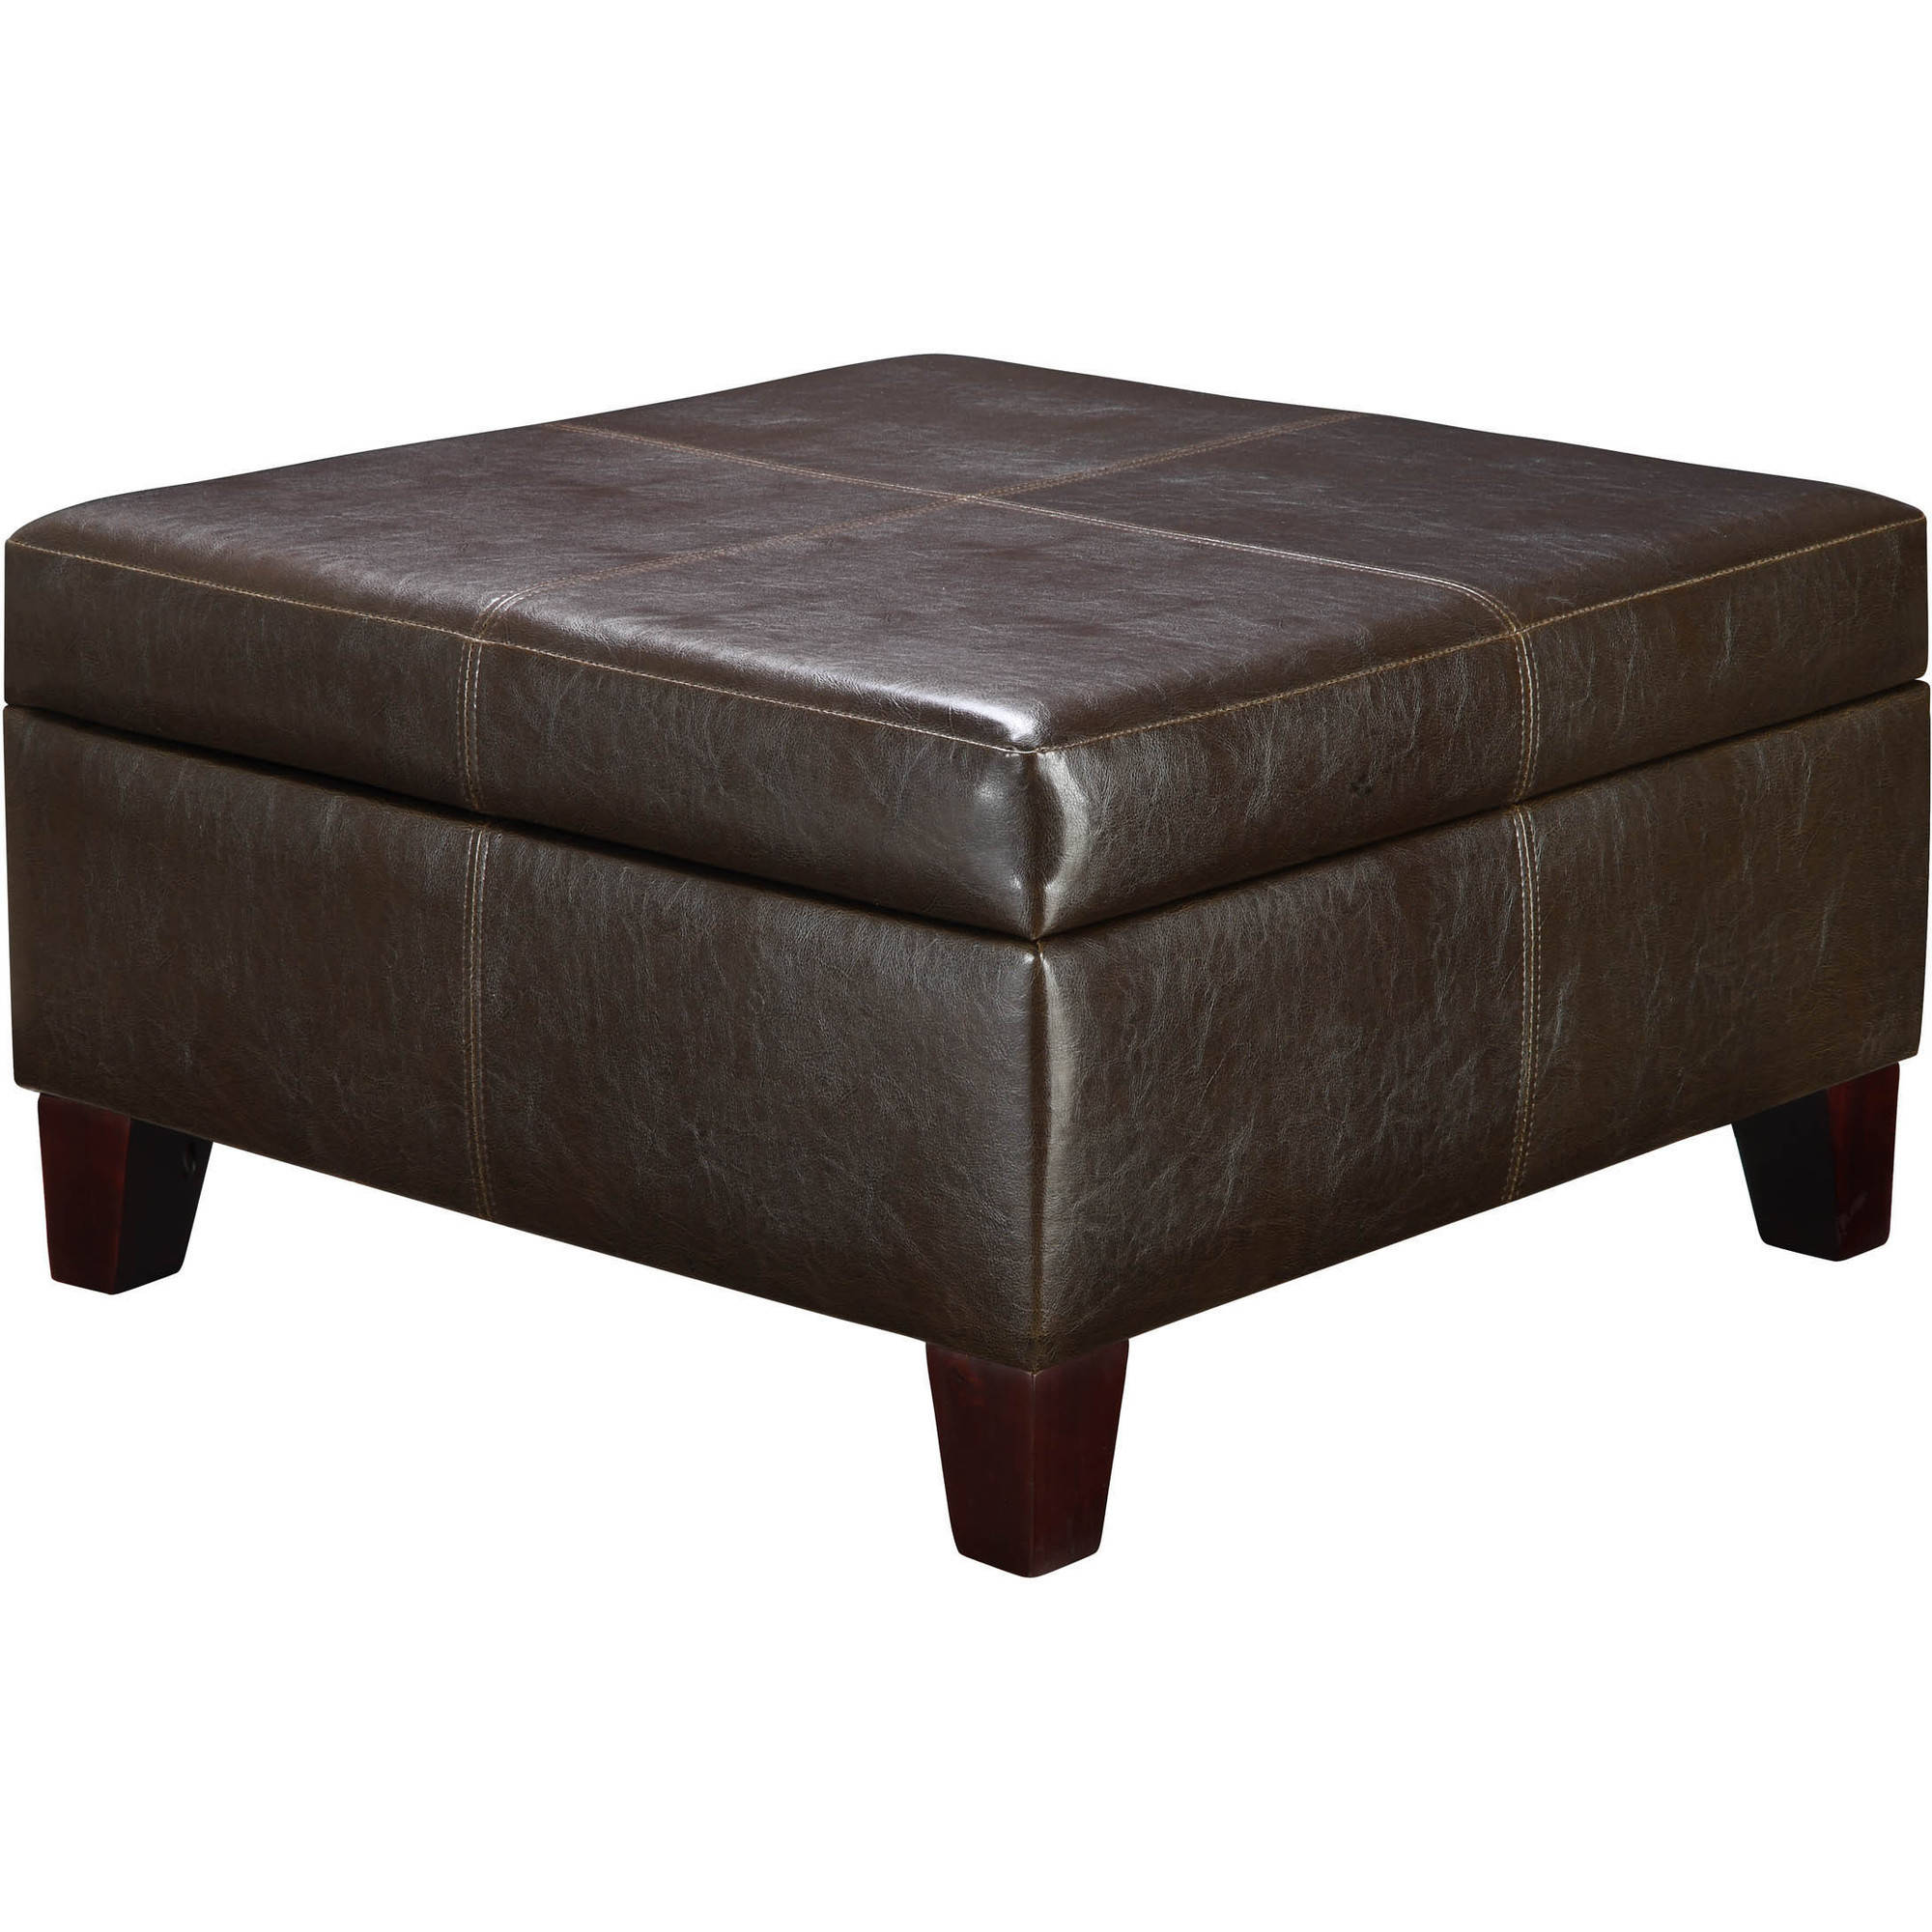 Dorel Living Square Storage Ottoman Multiple Colors Walmartcom